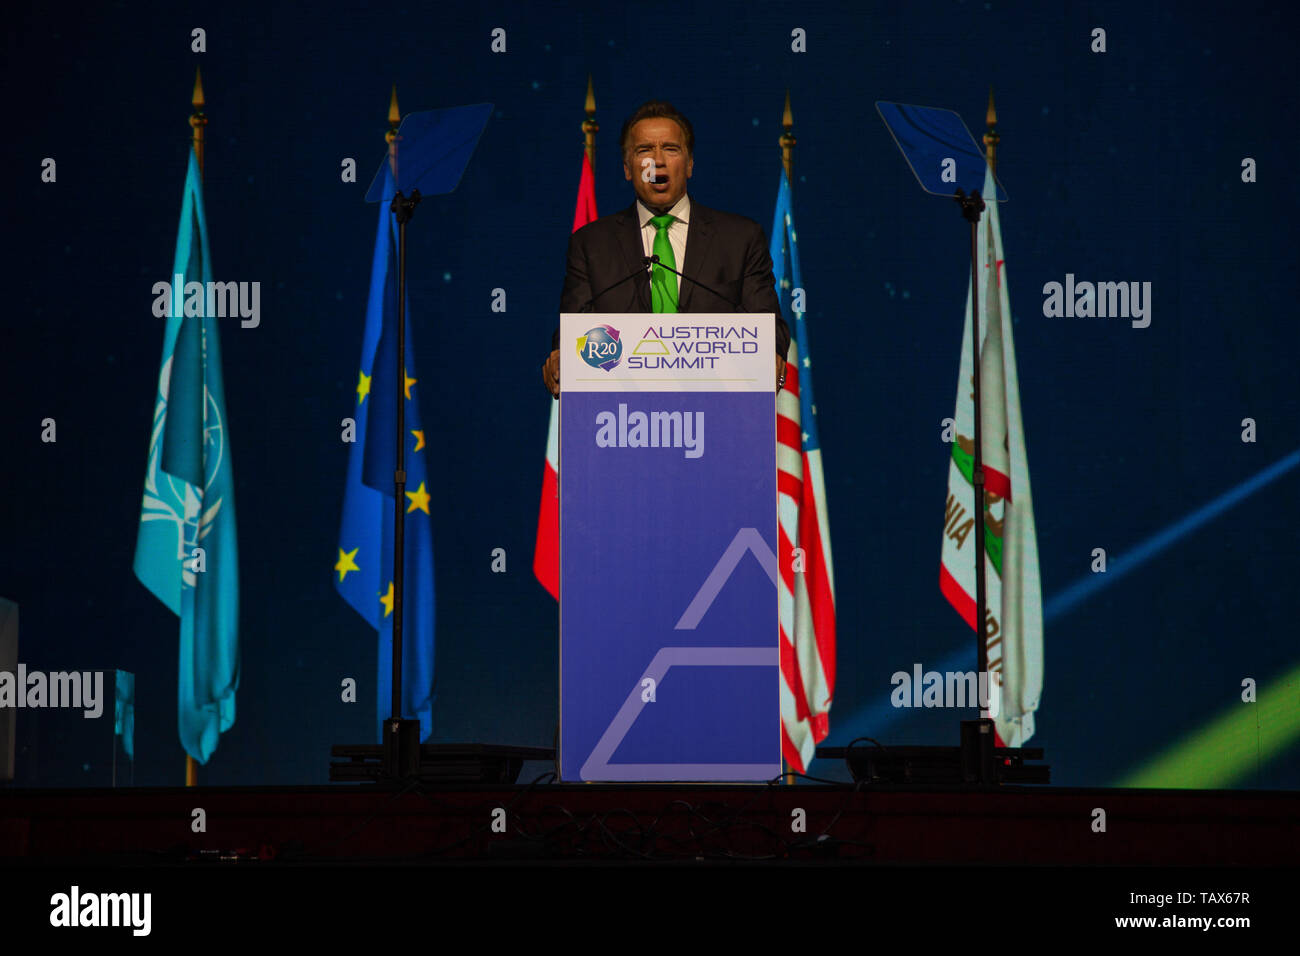 Actor & former Governor of California iArnold Schwarzenegger gives a keynote speech at the Austrian World Summit on 28 May 2019 - Stock Image